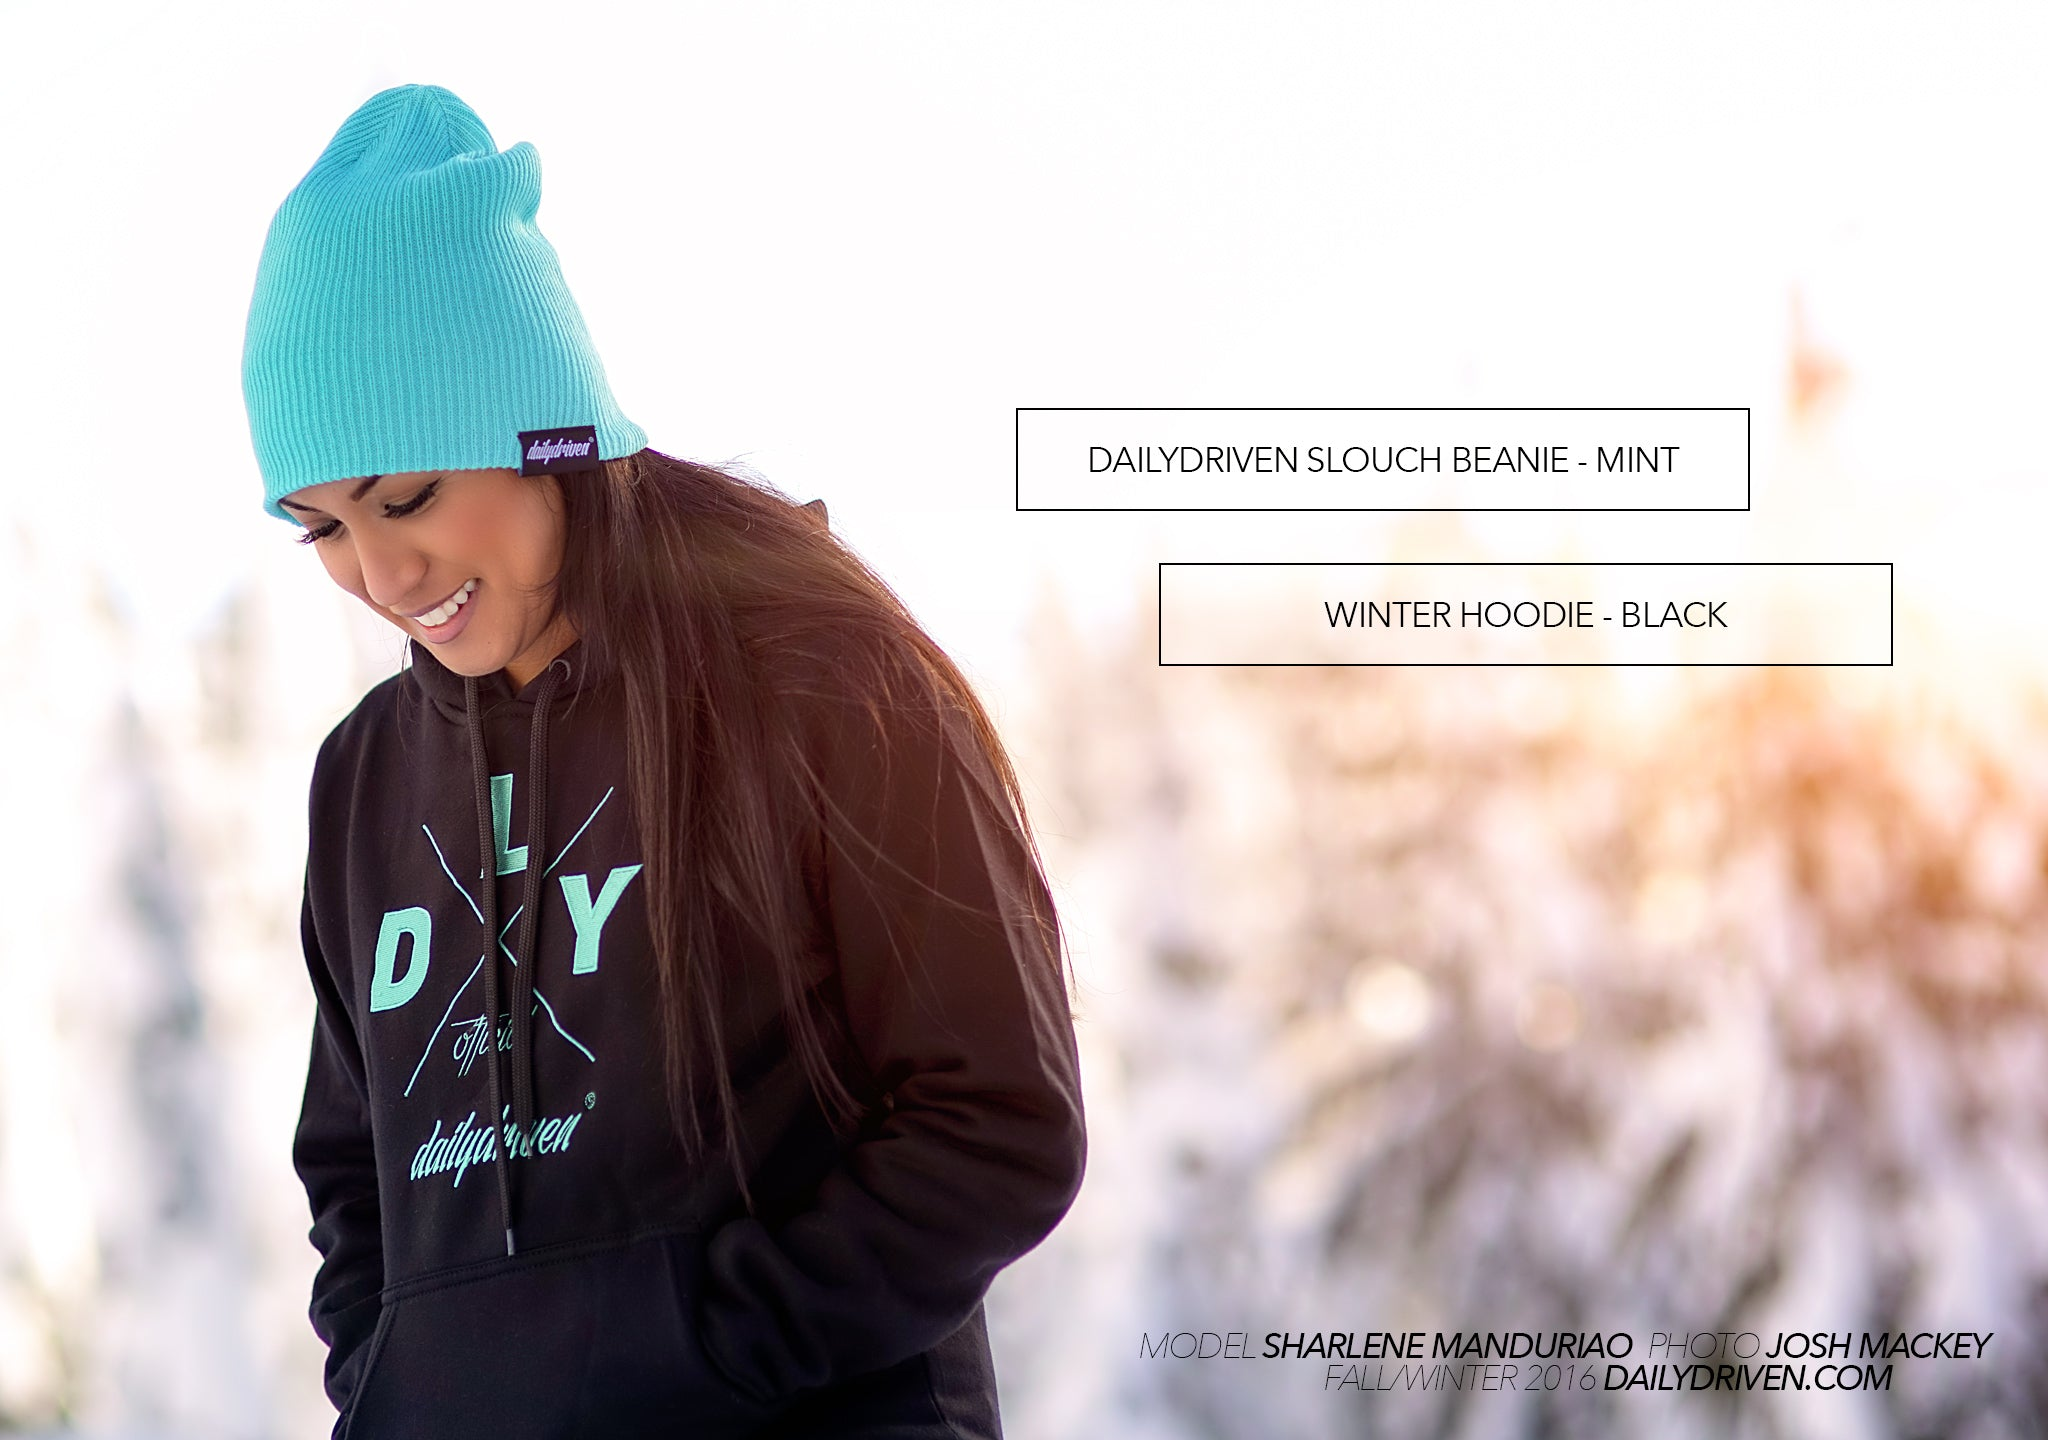 DailyDriven Slouch Beanie Winter Hoodie Black Mint